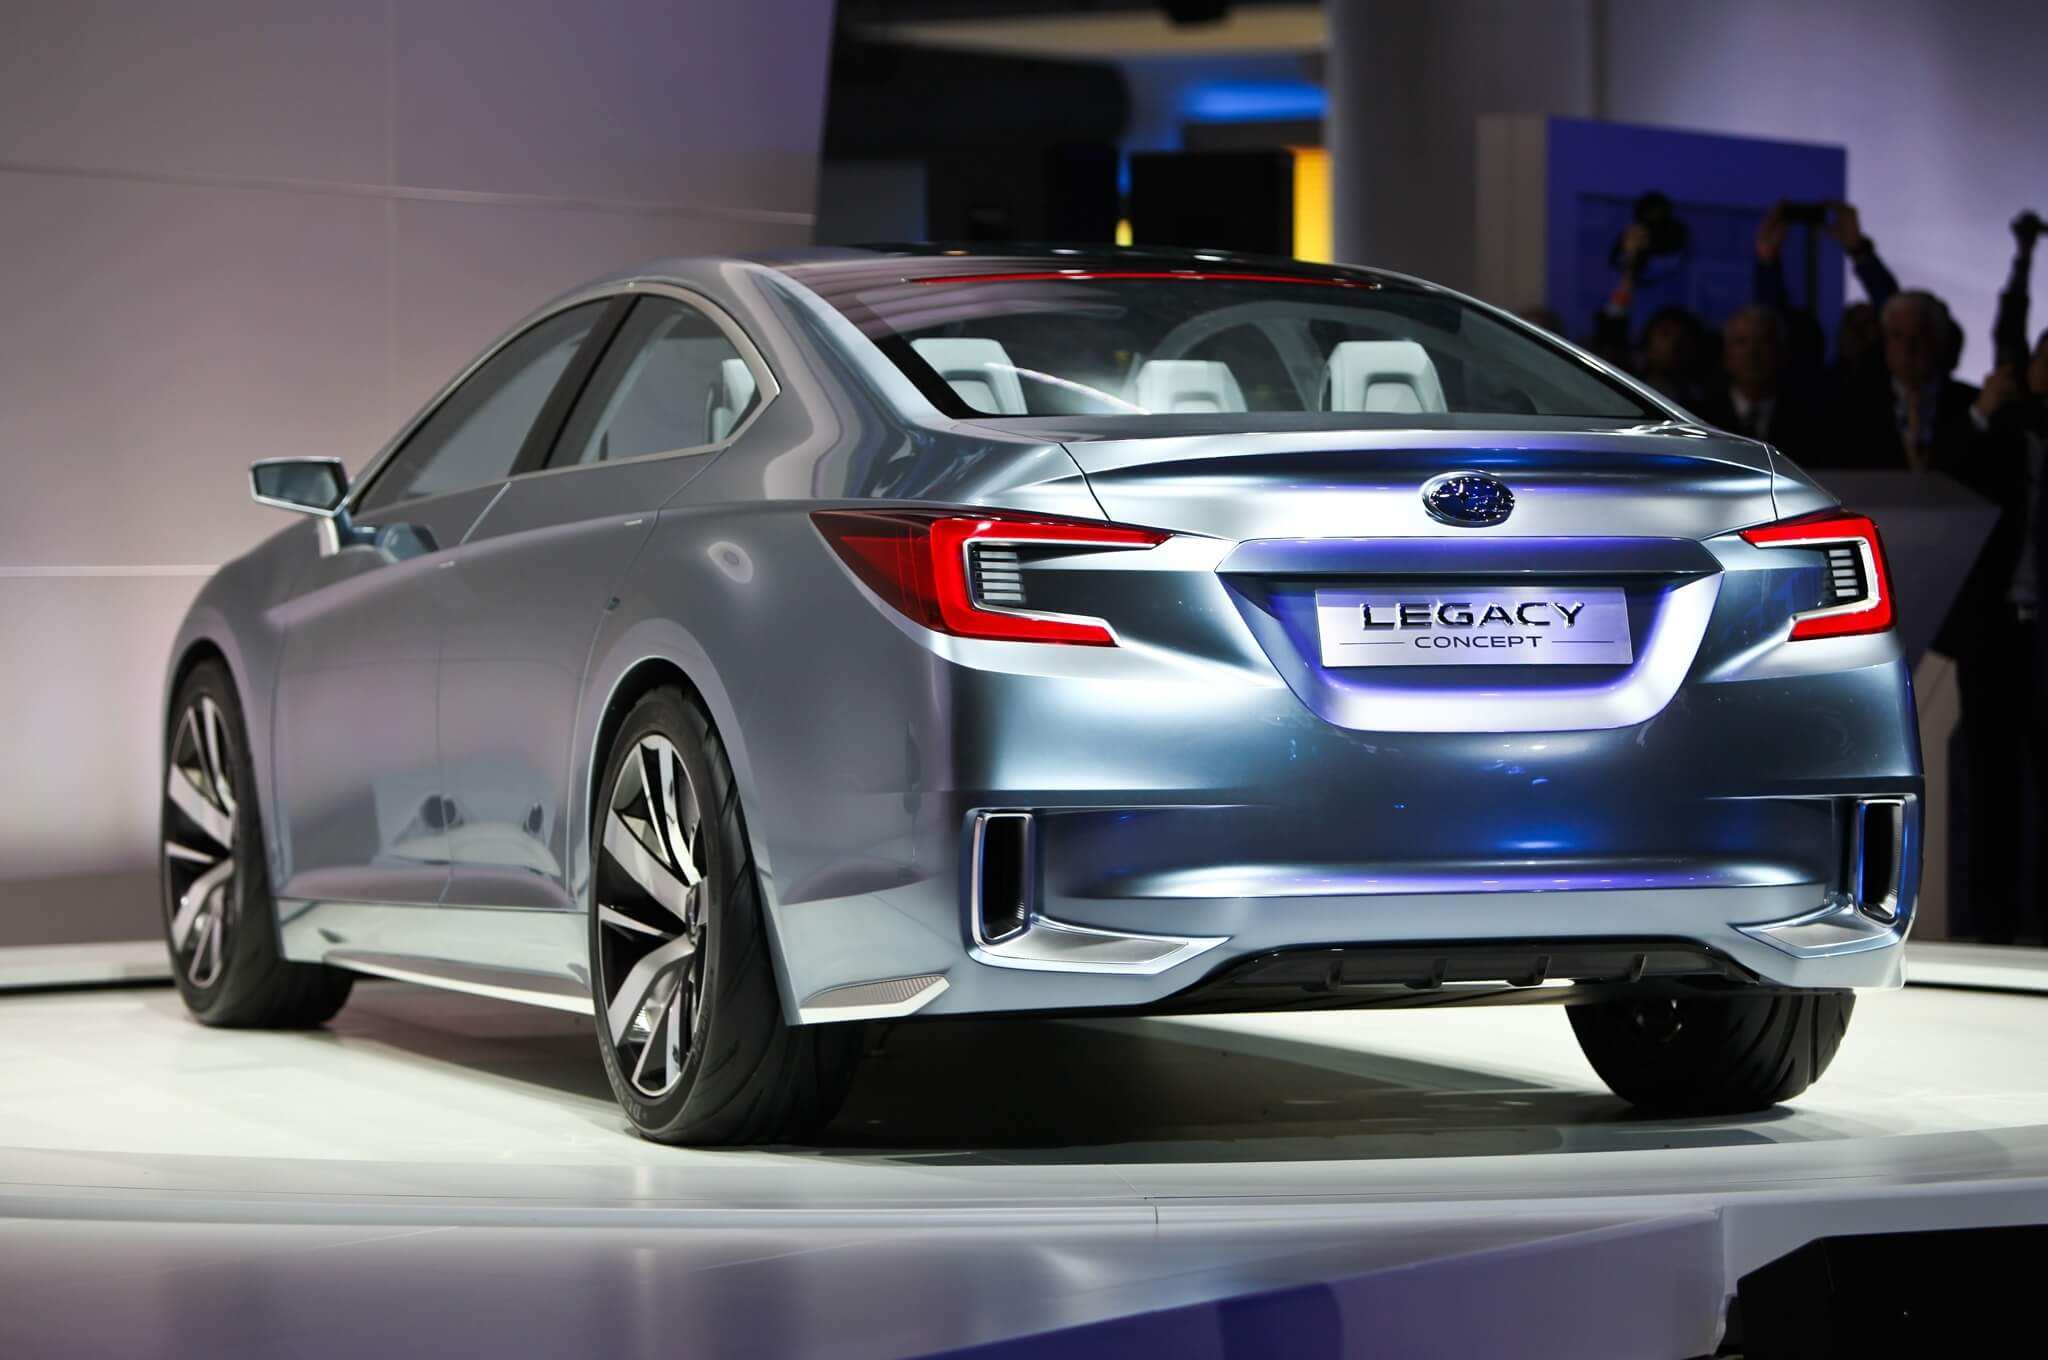 62 Best Review Subaru Legacy Gt 2019 Reviews by Subaru Legacy Gt 2019